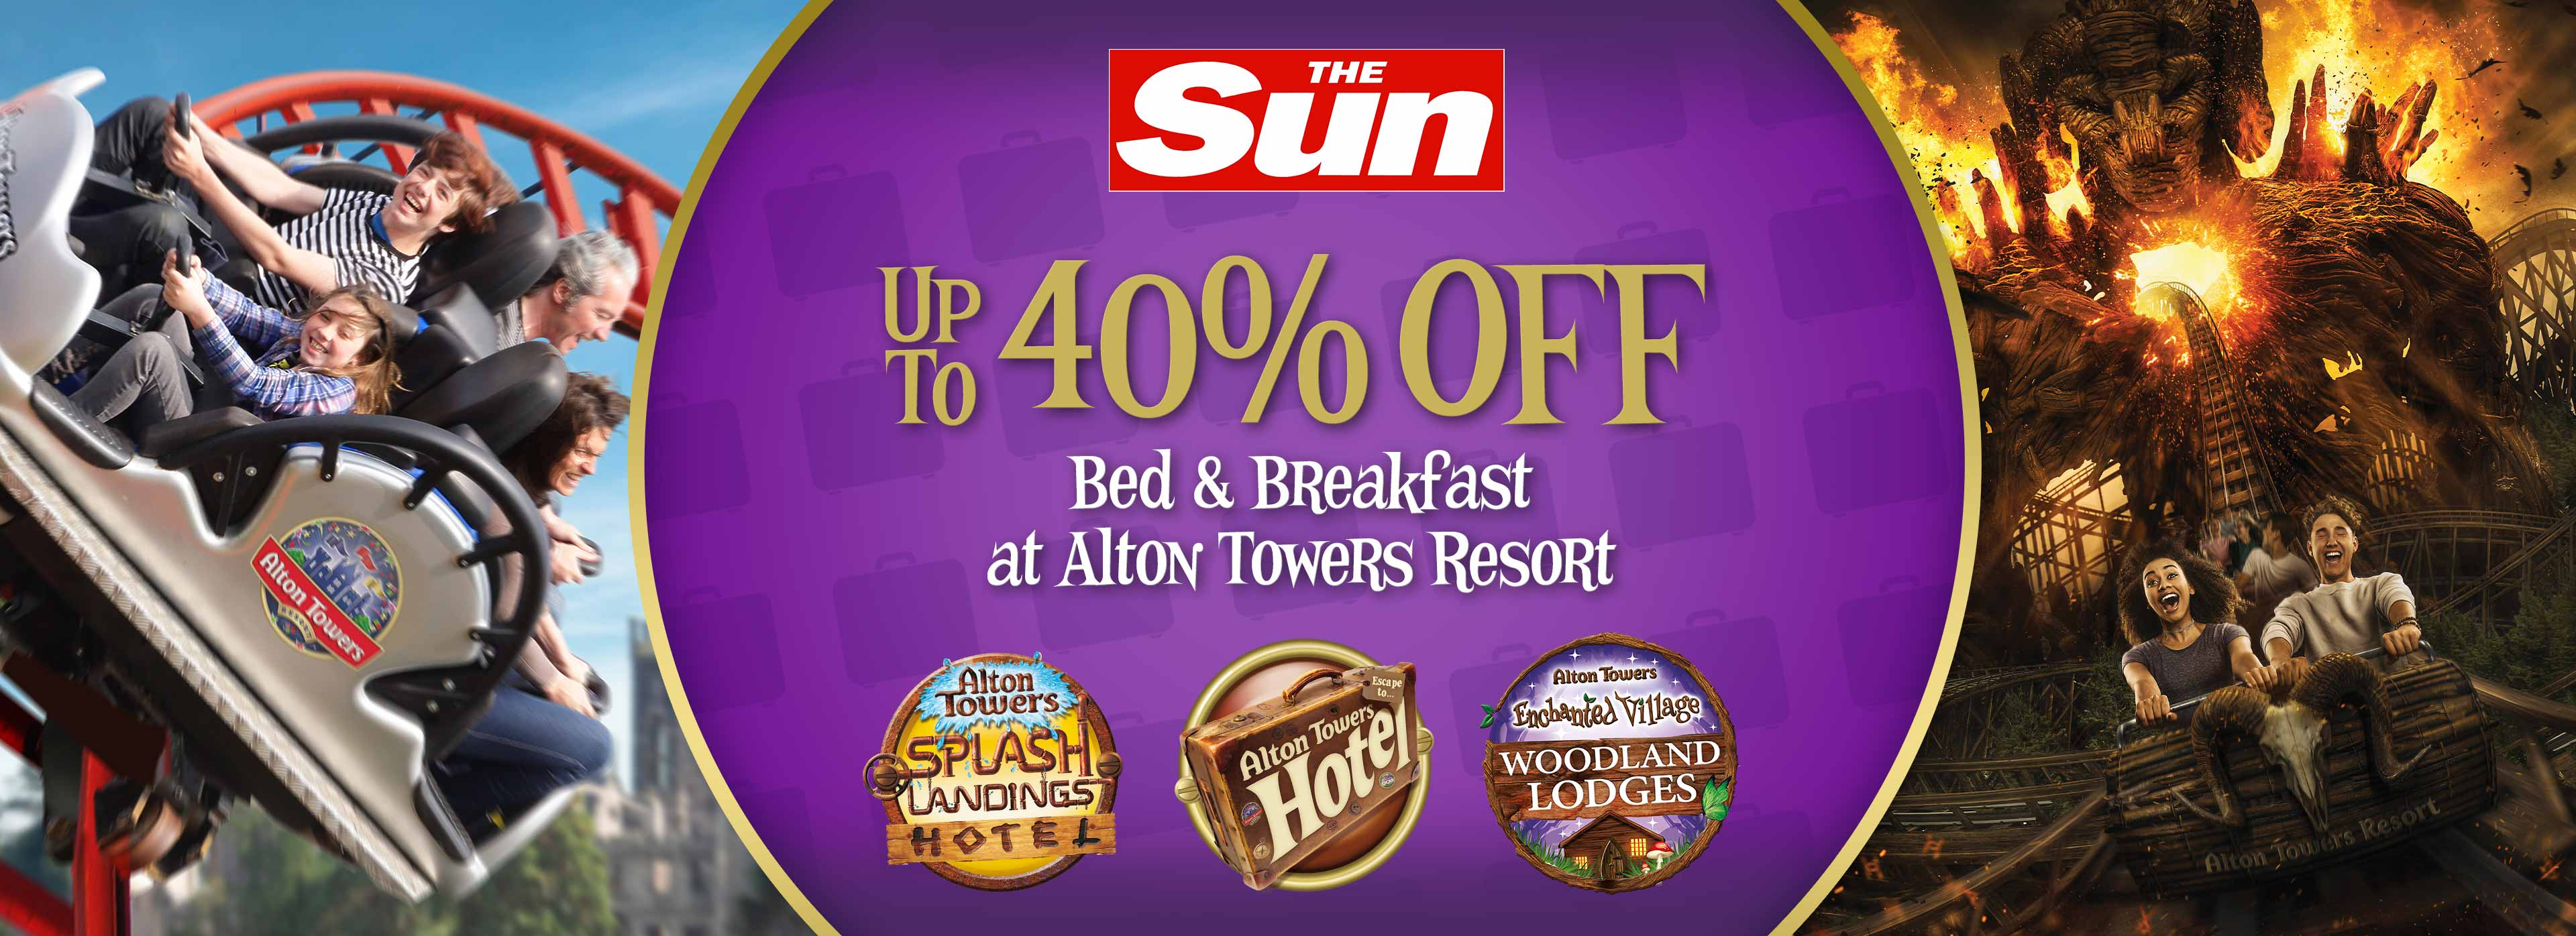 Save up to 40% with The Sun